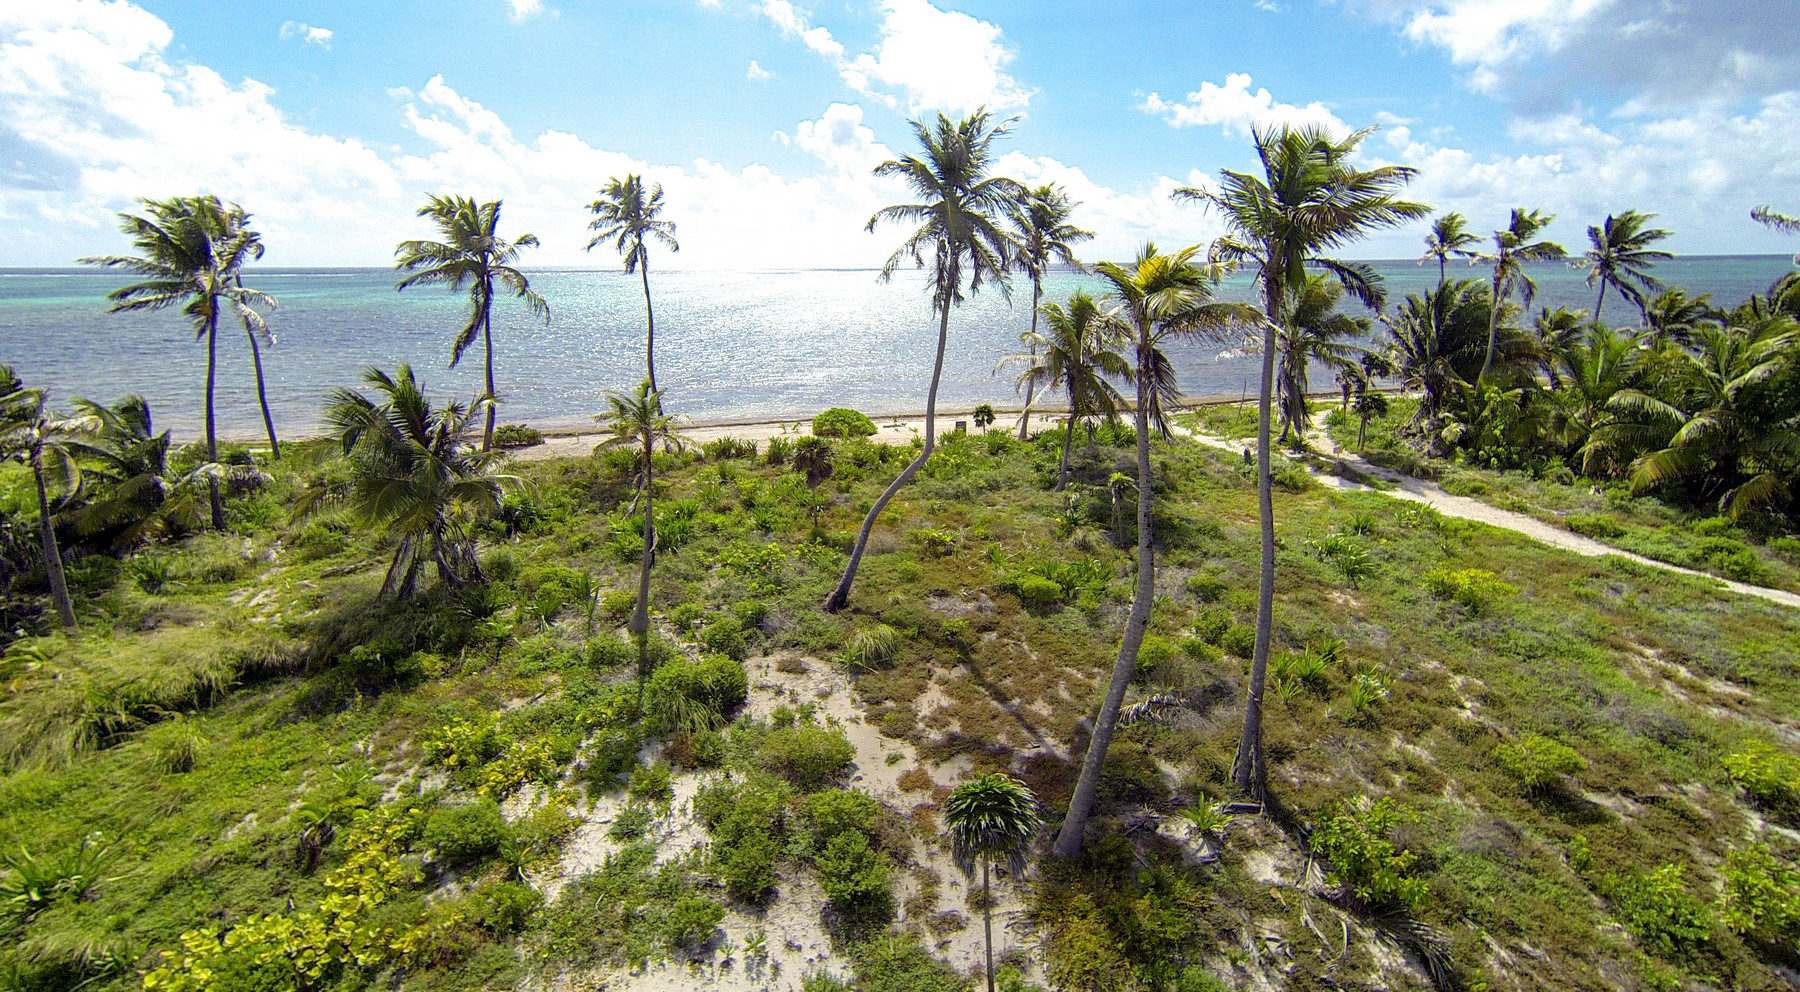 Land for Sale at Residential Opportunity Other Ambergris Caye, Ambergris Caye Belize